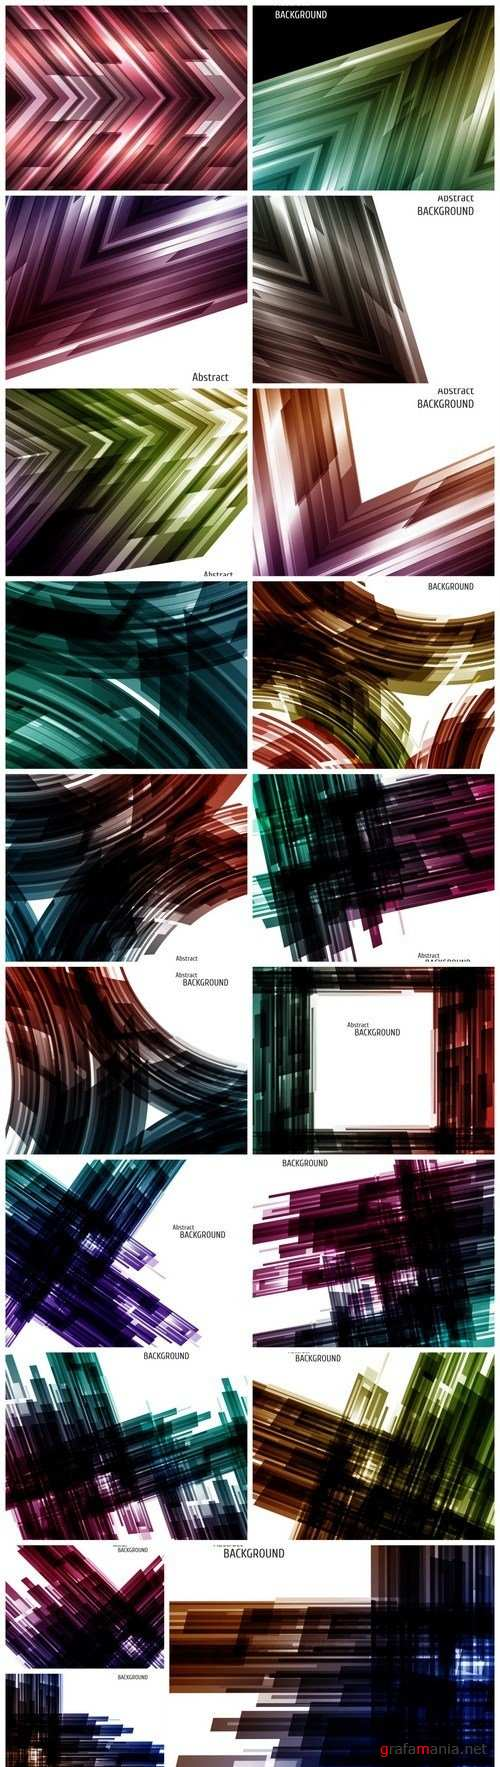 Abstract grunge backgrounds - 19xEPS